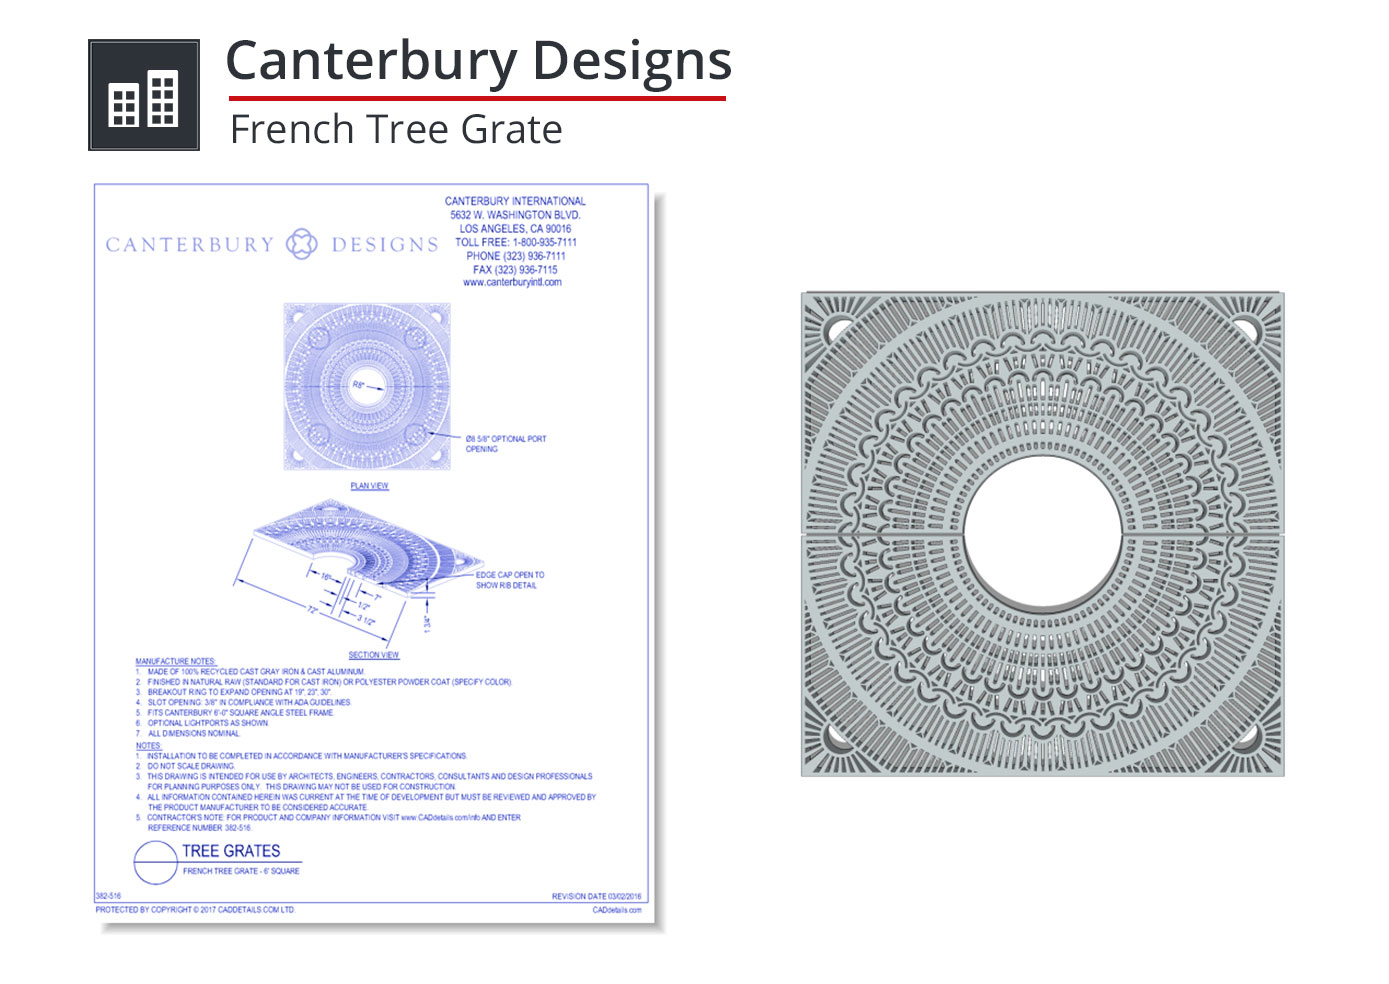 Canterbury-Designs-French-Tree-Grate-CADdrawing.jpg